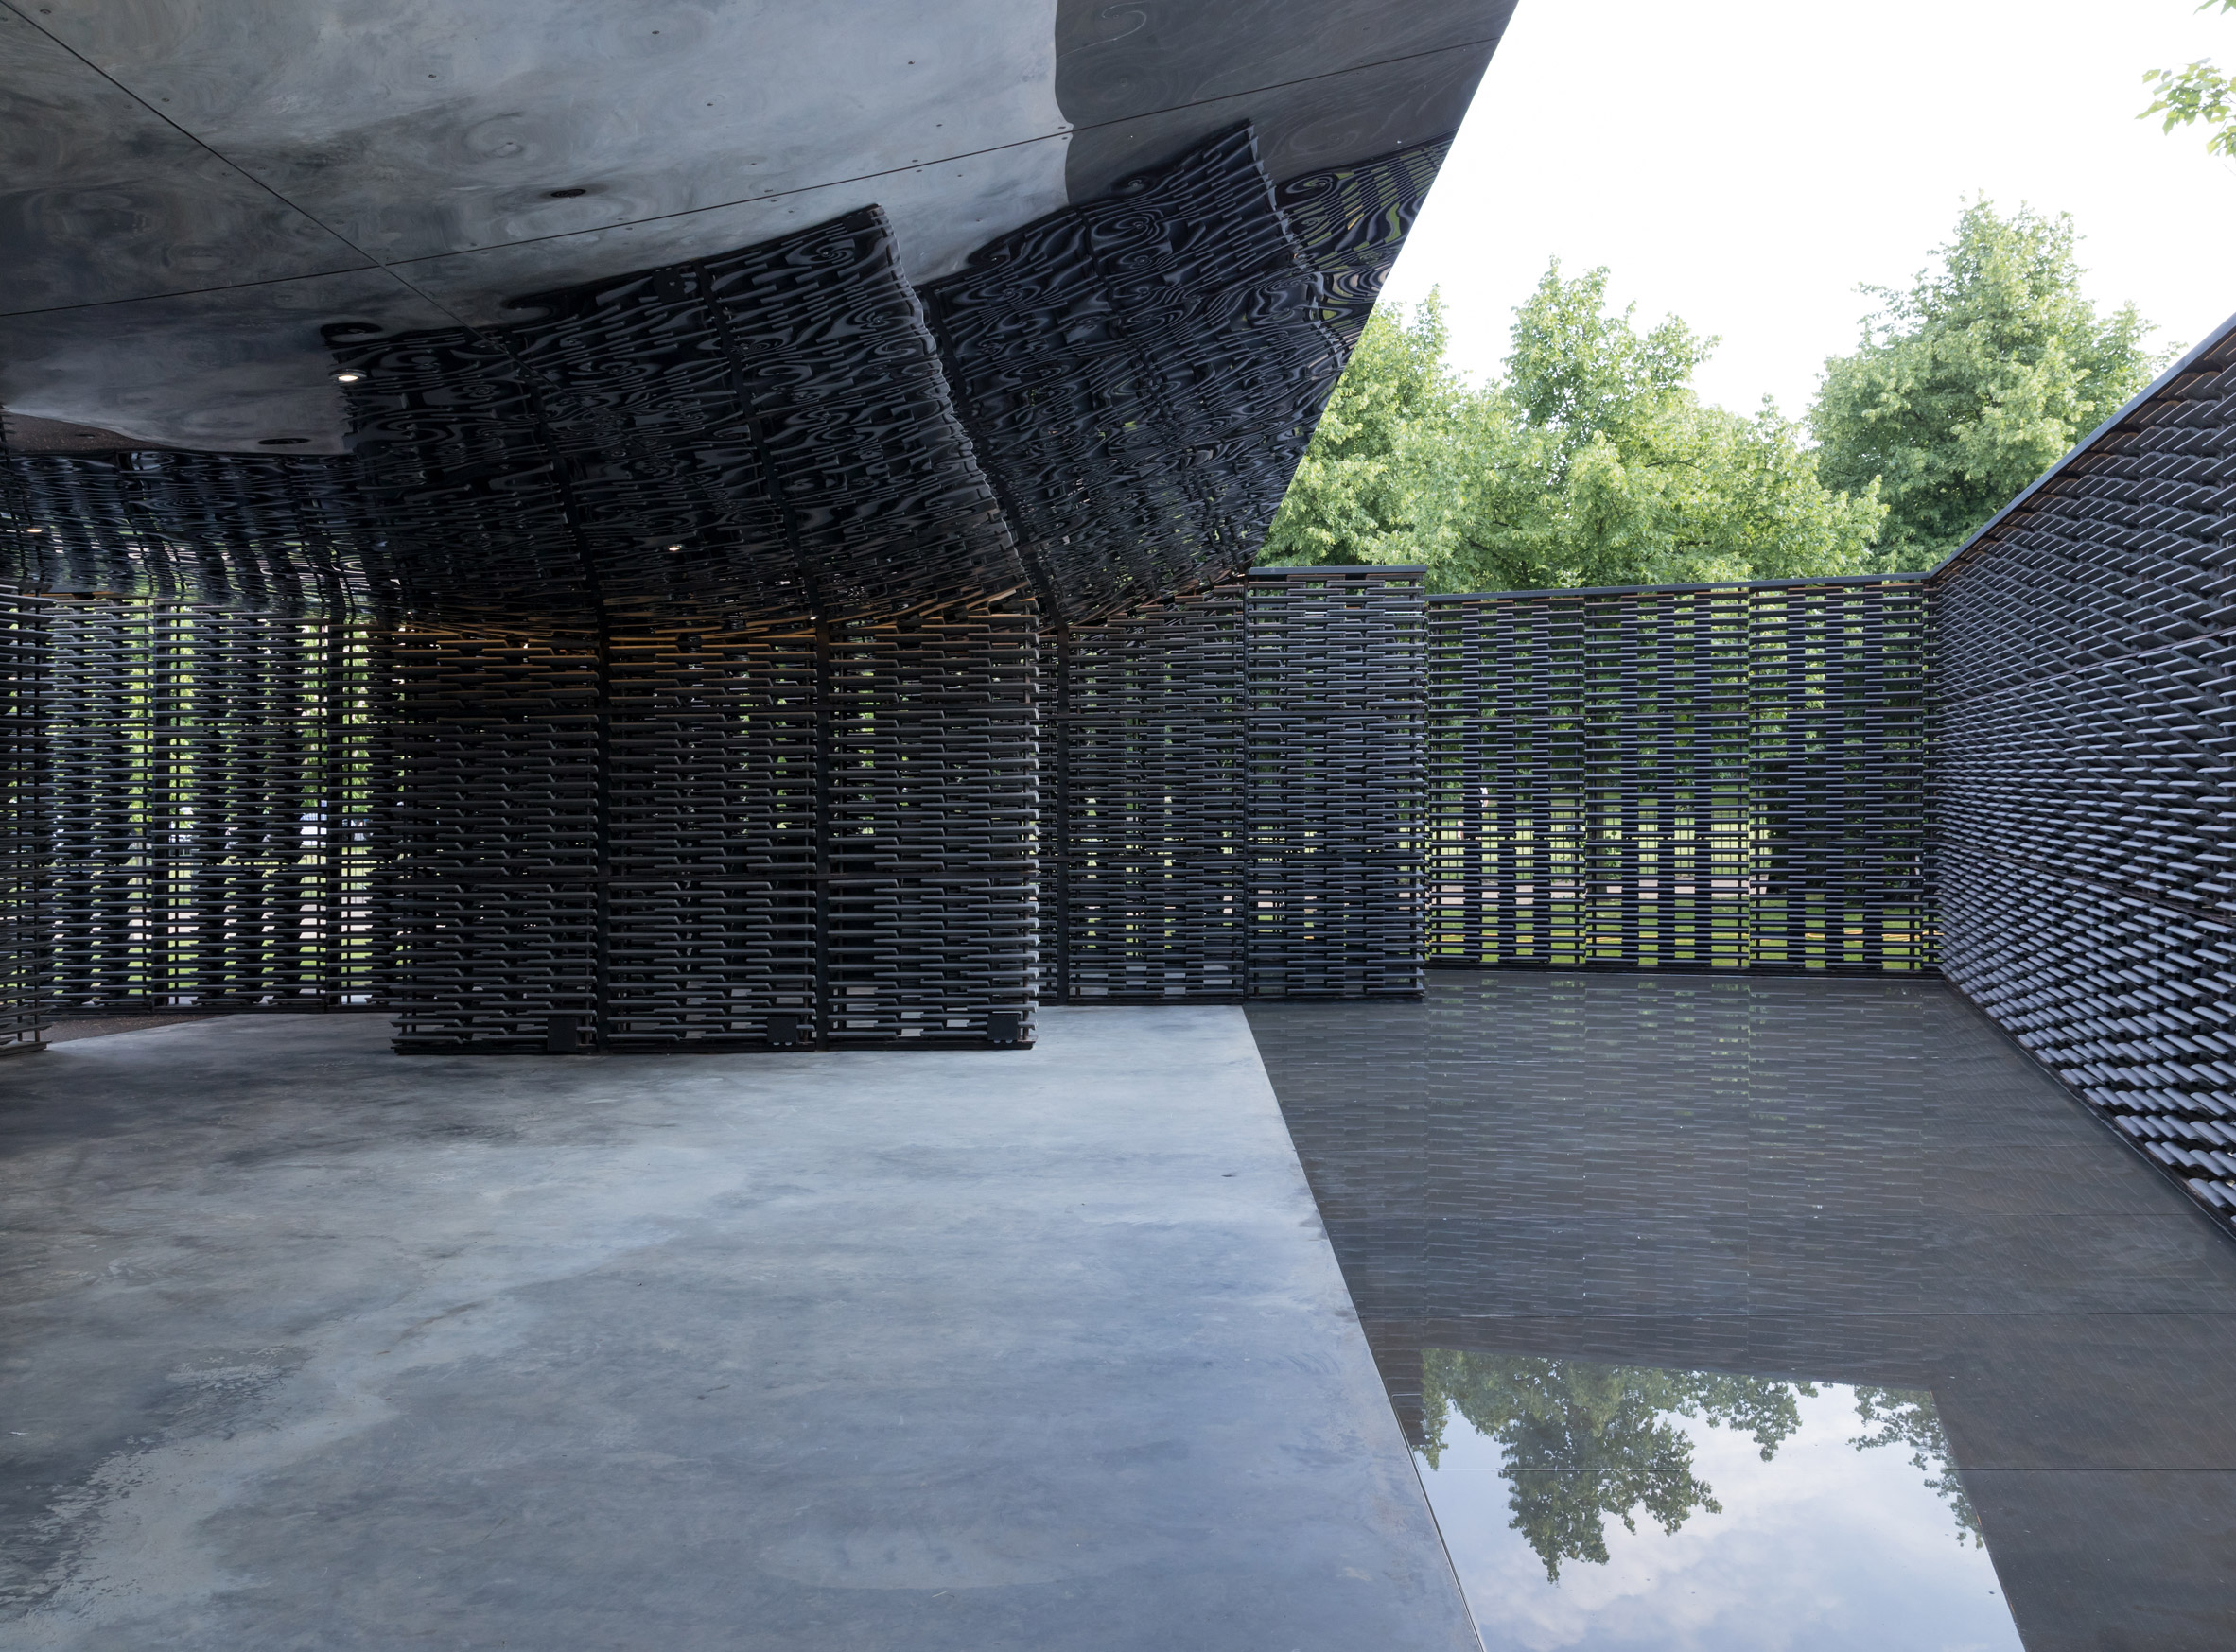 Serpentine Pavilion by Frida Escobedo, London, UK